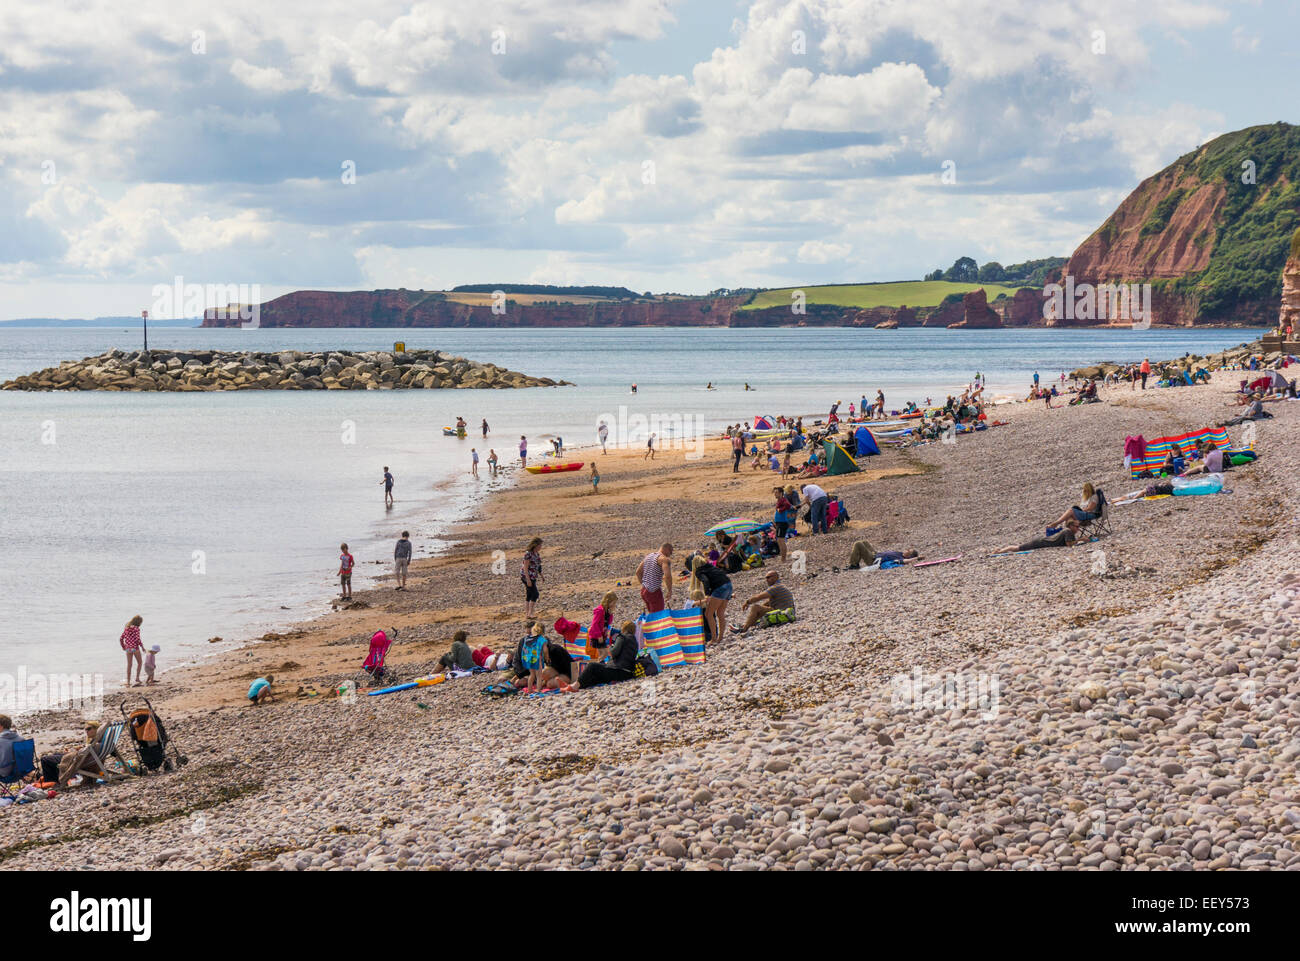 England Beaches With People